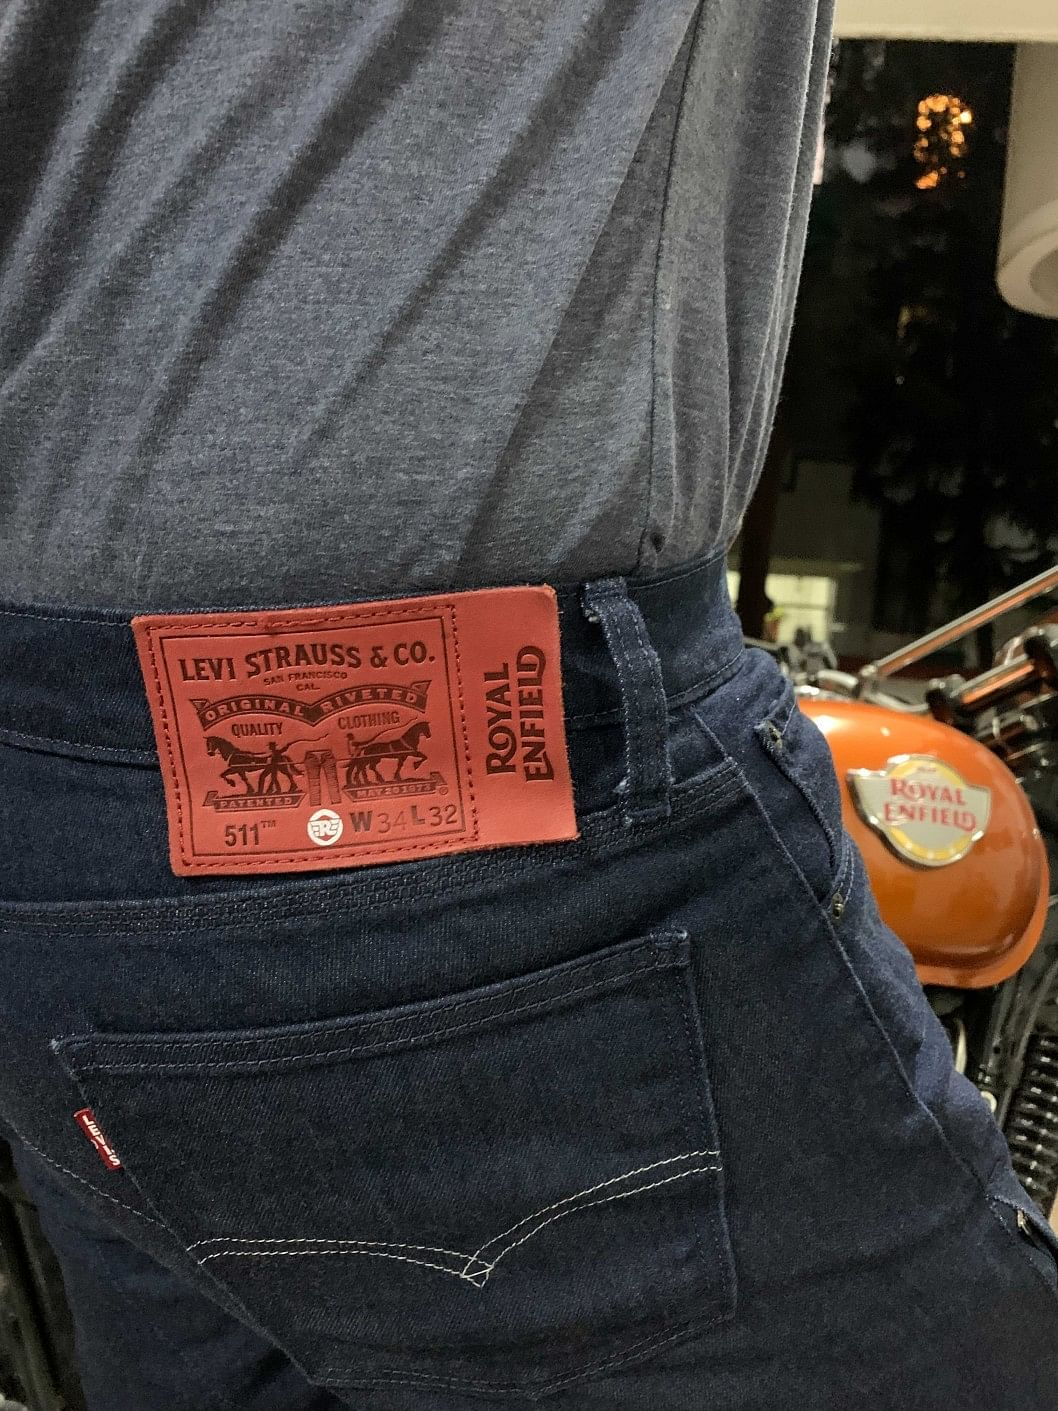 The Royal Enfield Levi's motorcycle jeans are now being offered in 10 designs